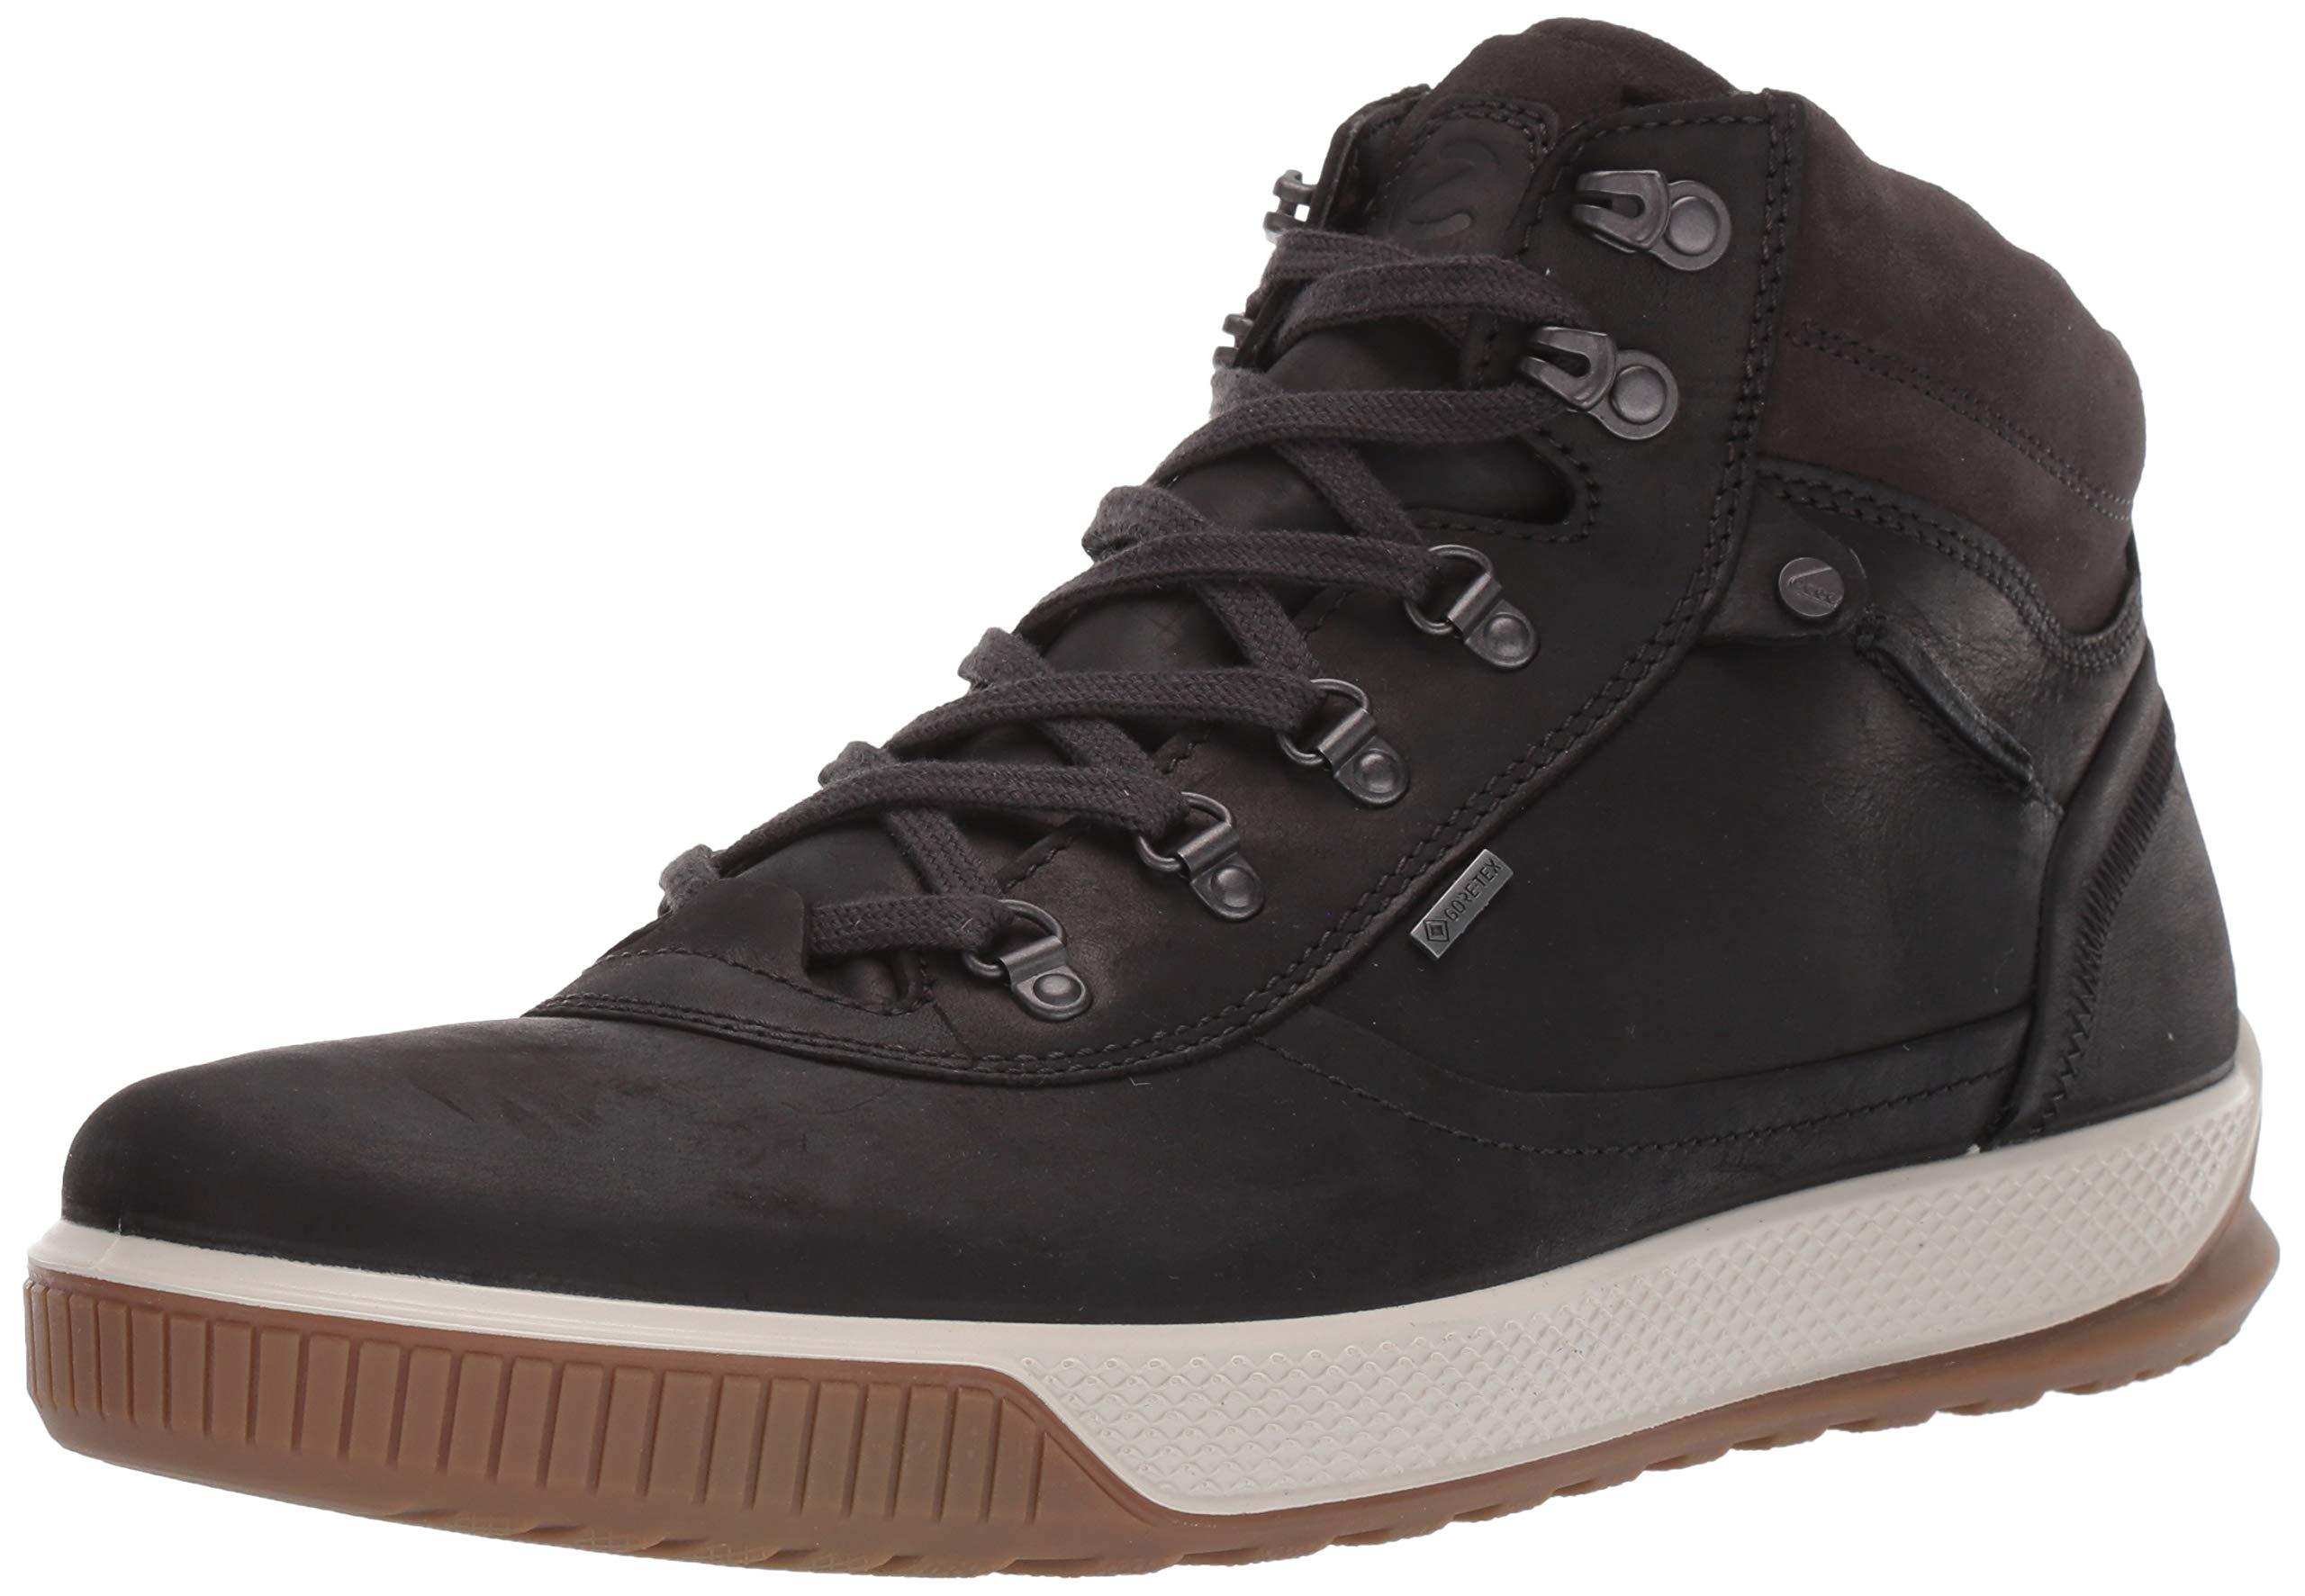 Ecco Byway Tred Hi-top Trainers in